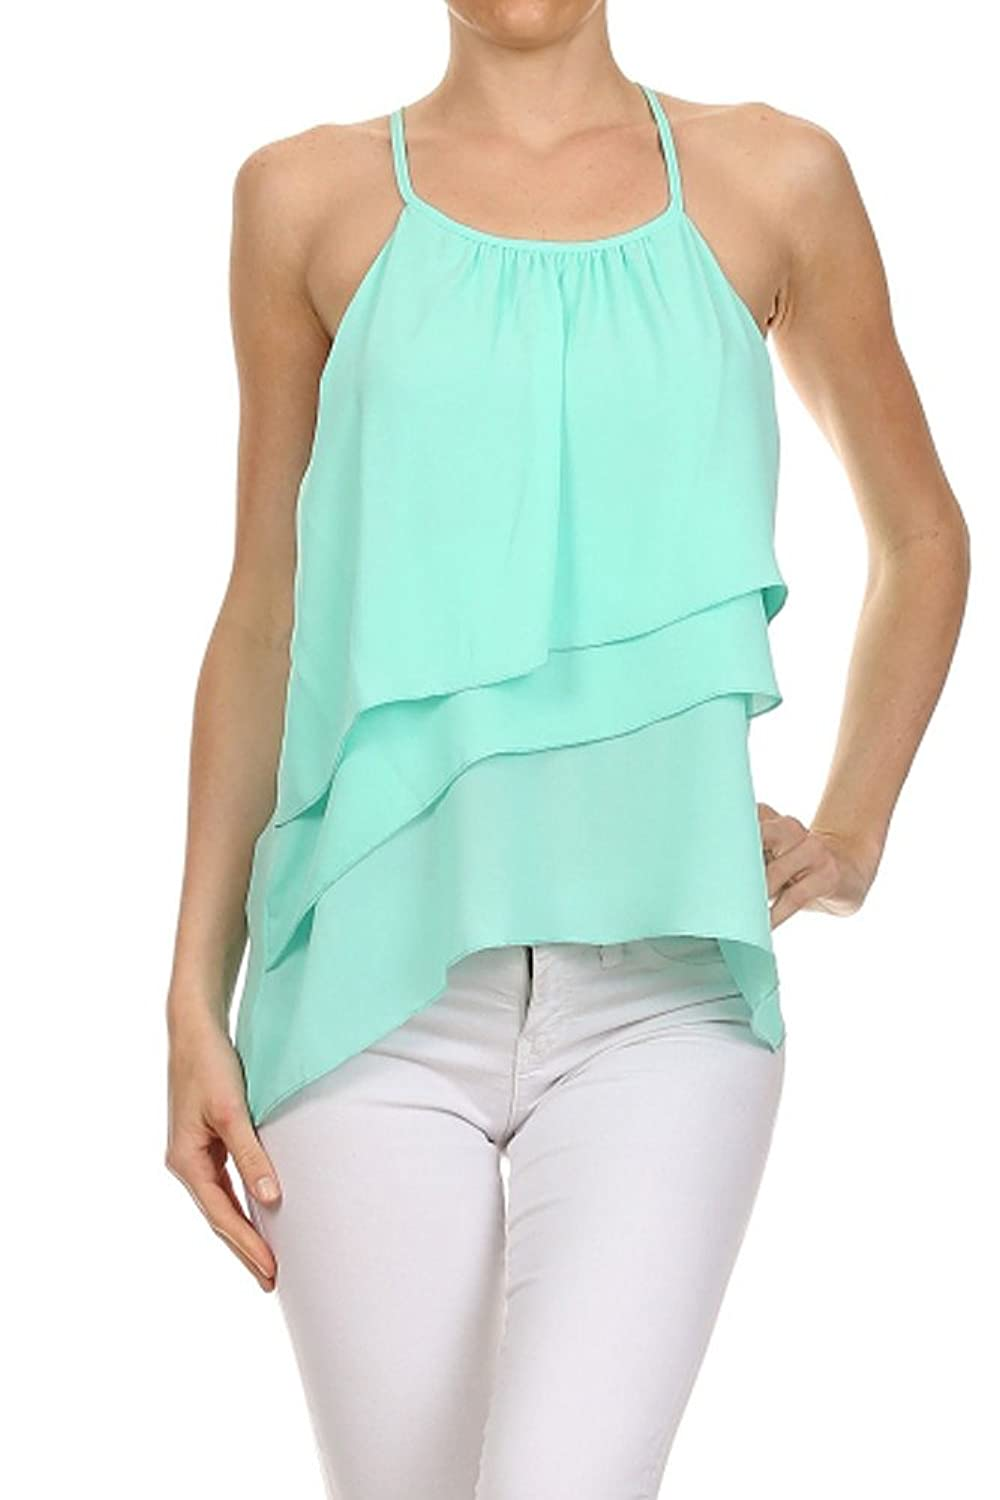 12 Ami Georgia Solid Layered Chiffon Cover-Up Cami Top - Made in USA